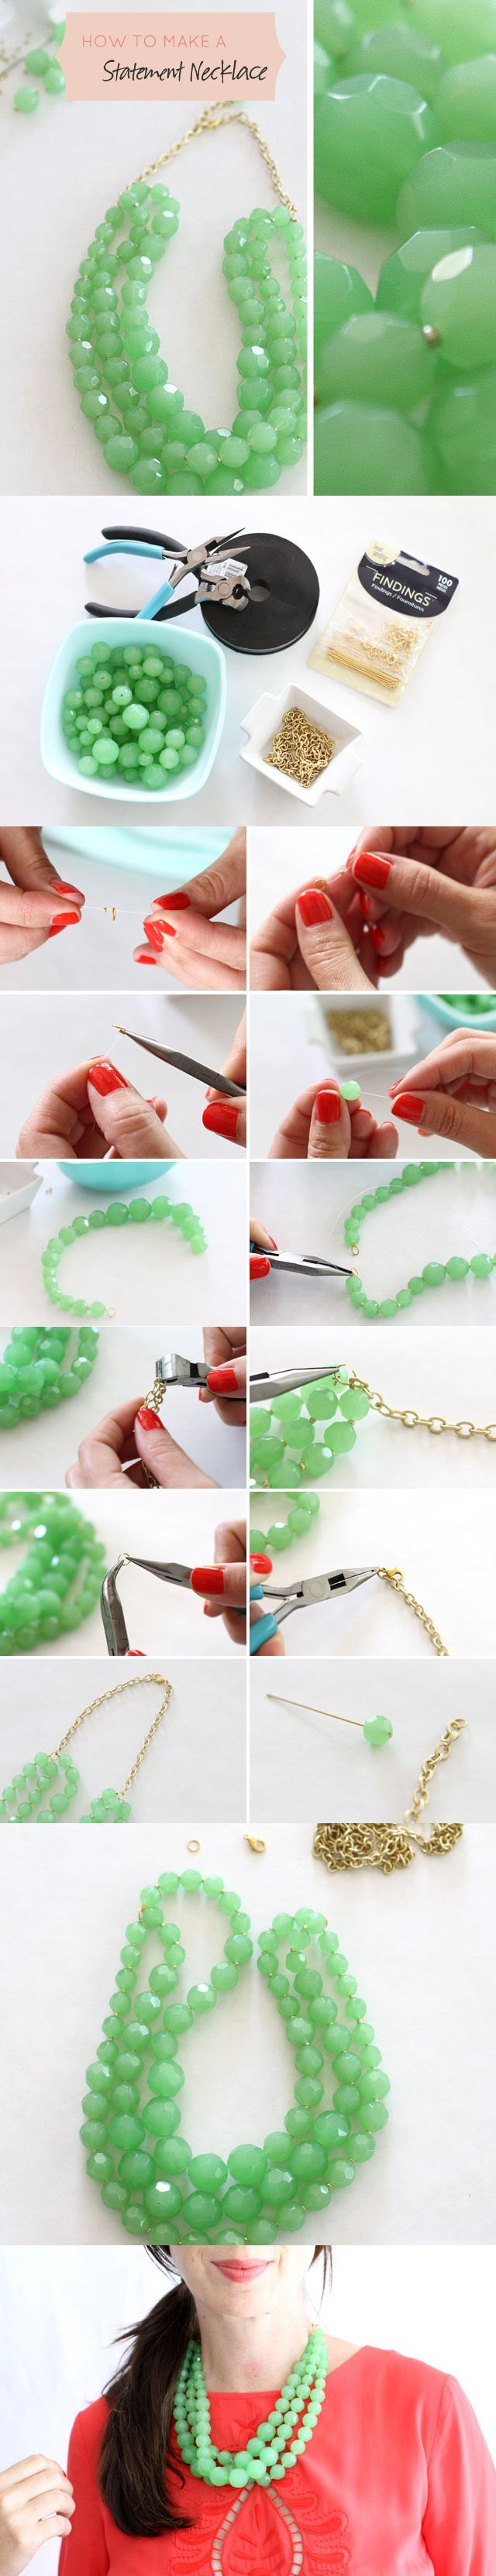 Diy the most beautiful necklace do it yourself ideas fashion the most beautiful necklace do it yourself ideas fashion diva design quick diy jewelry making ideas pinterest fashion diva design diva and diy solutioingenieria Images